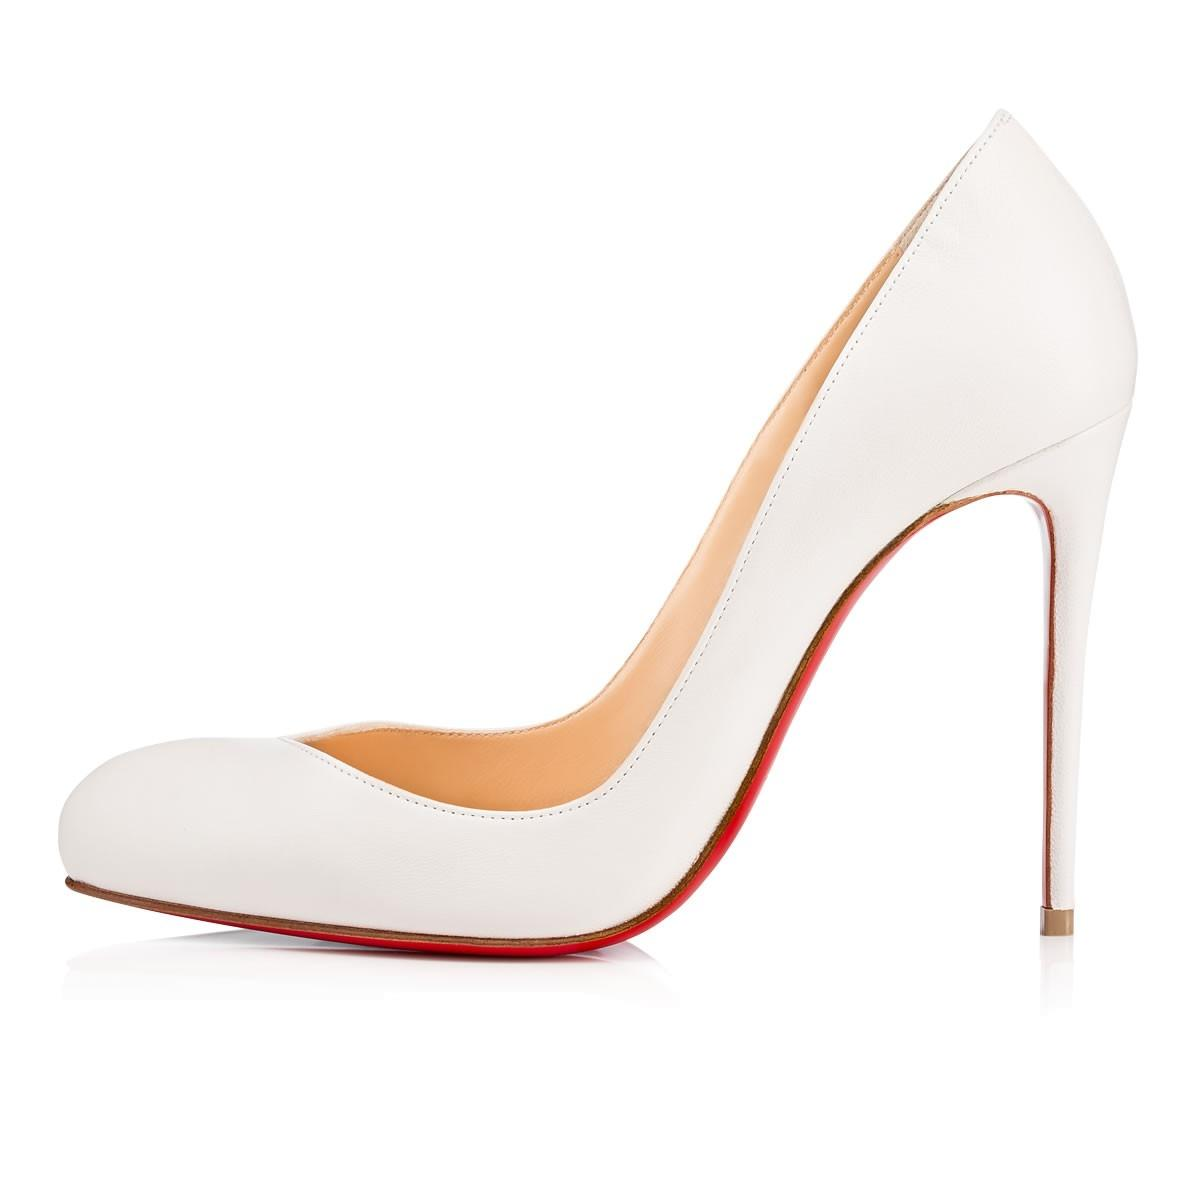 Christian Louboutin Latte (White) Breche 100 Leather Heels Pumps Size EU 41 (Approx. US 11) Regular (M, B)